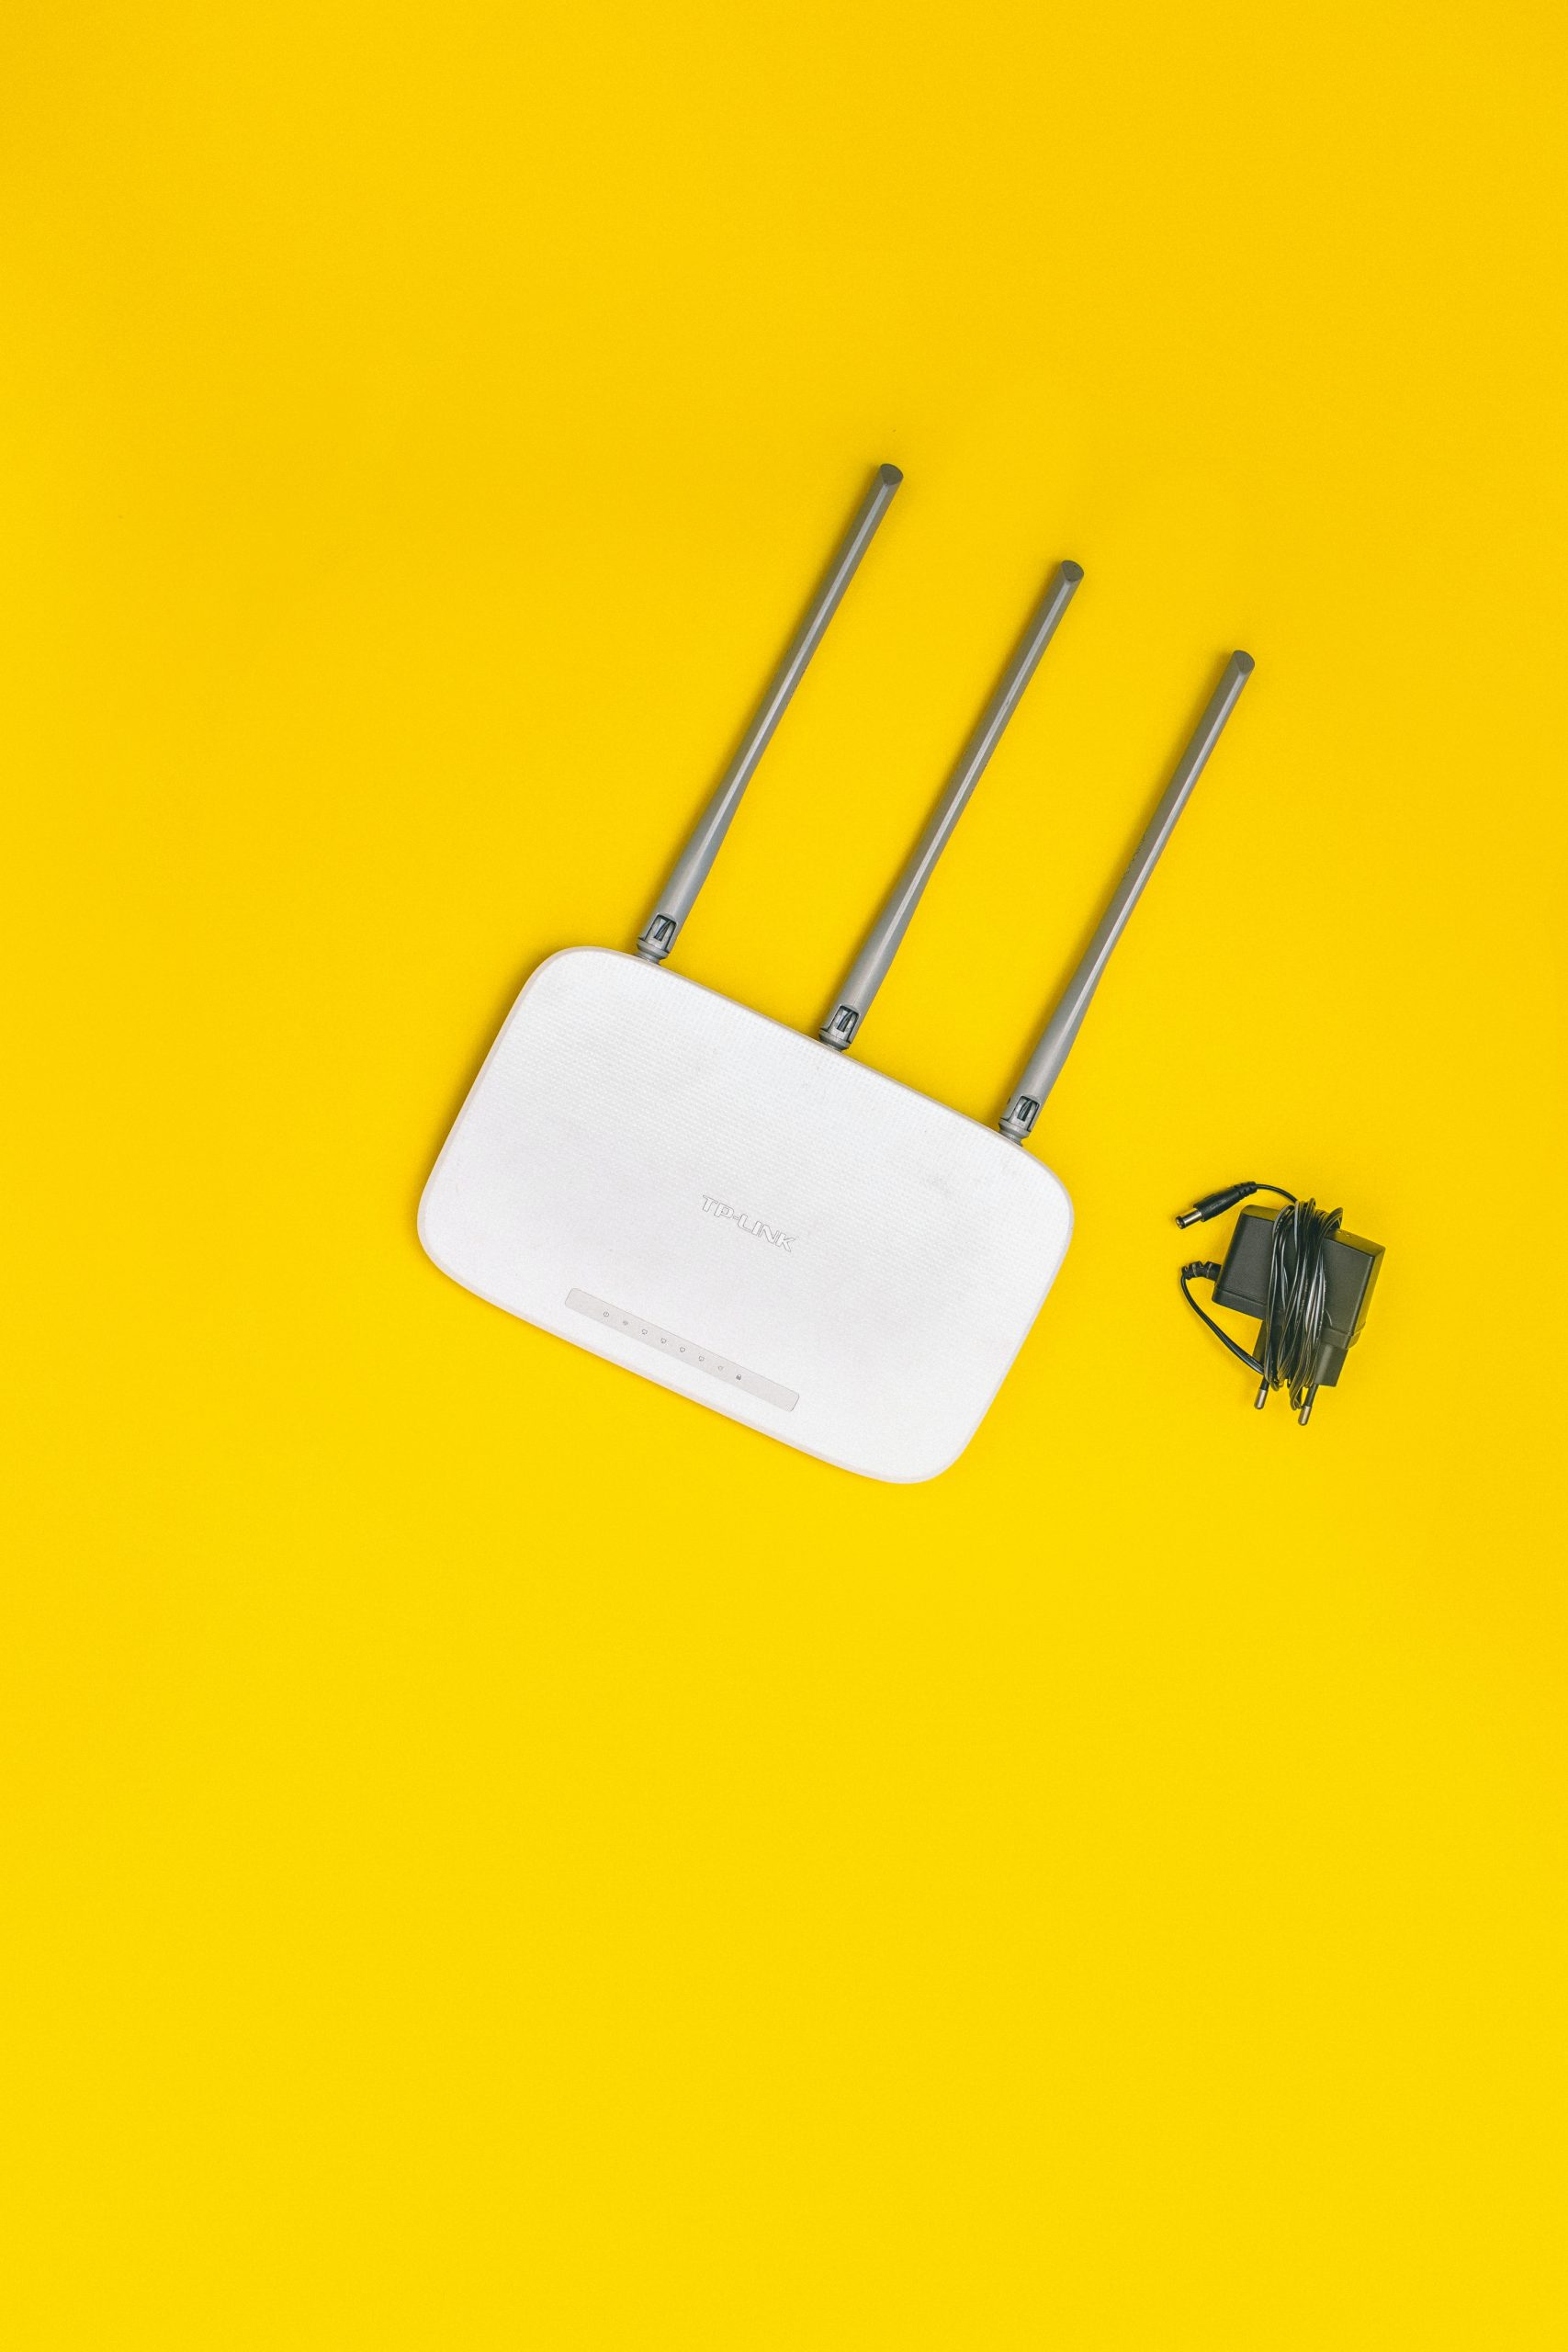 how-to-get-wifi-without-internet-provider